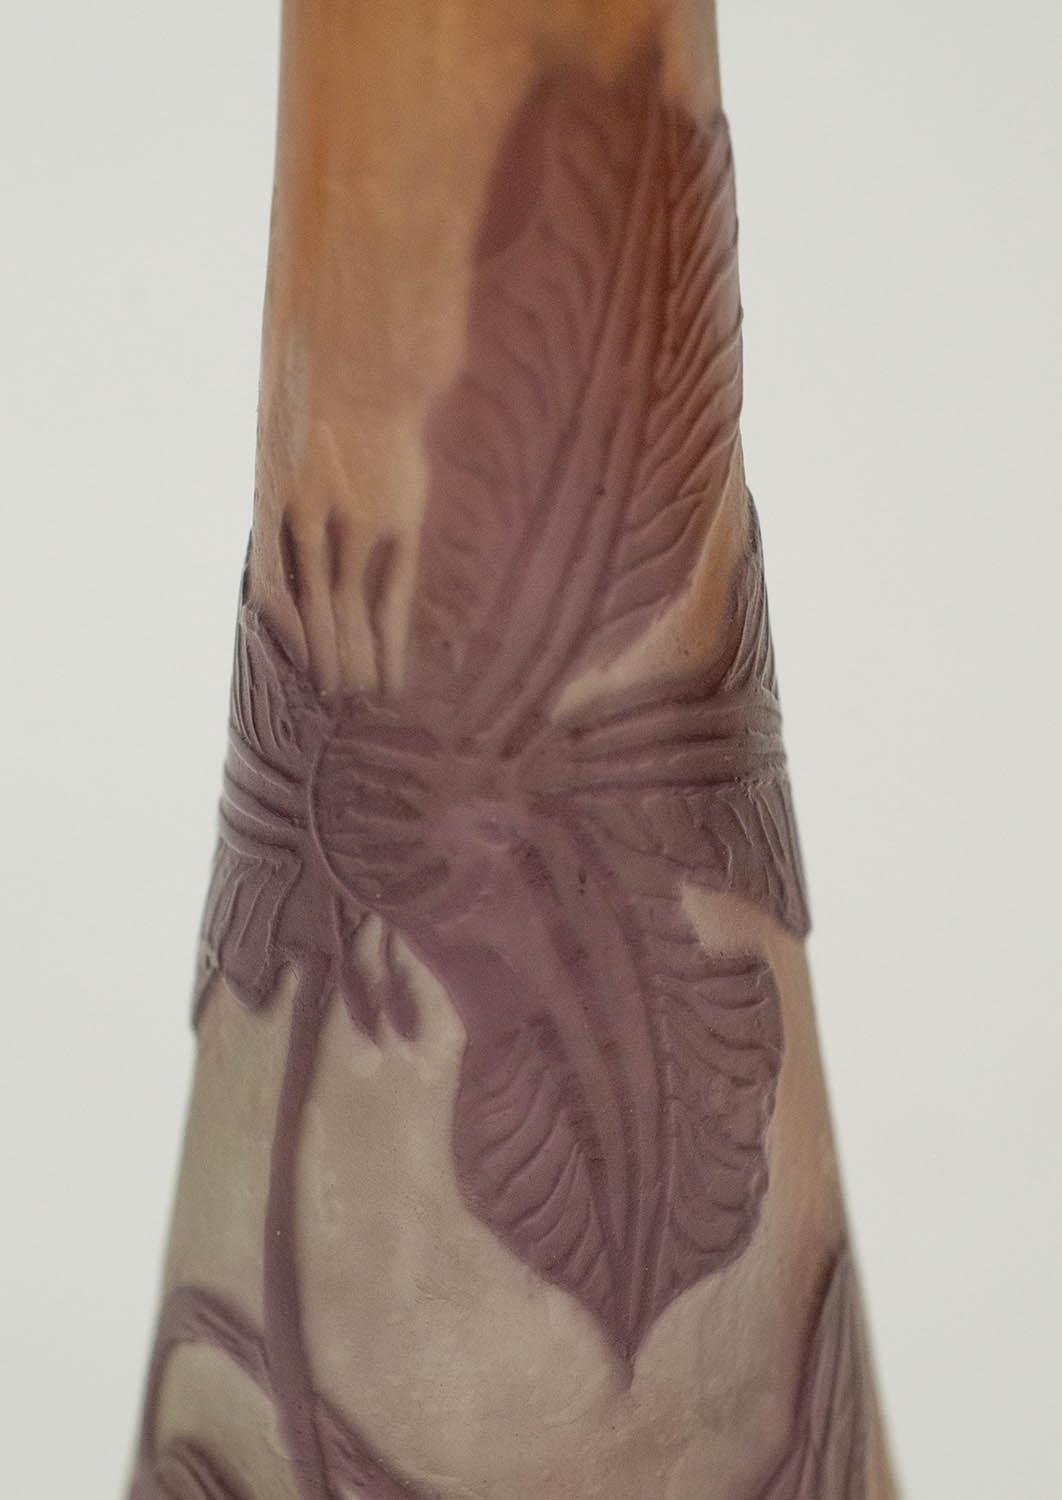 VASE, Emile Galle cameo glass, amethyst with flowering clematis on frosted ground, 15cm H. - Image 5 of 6